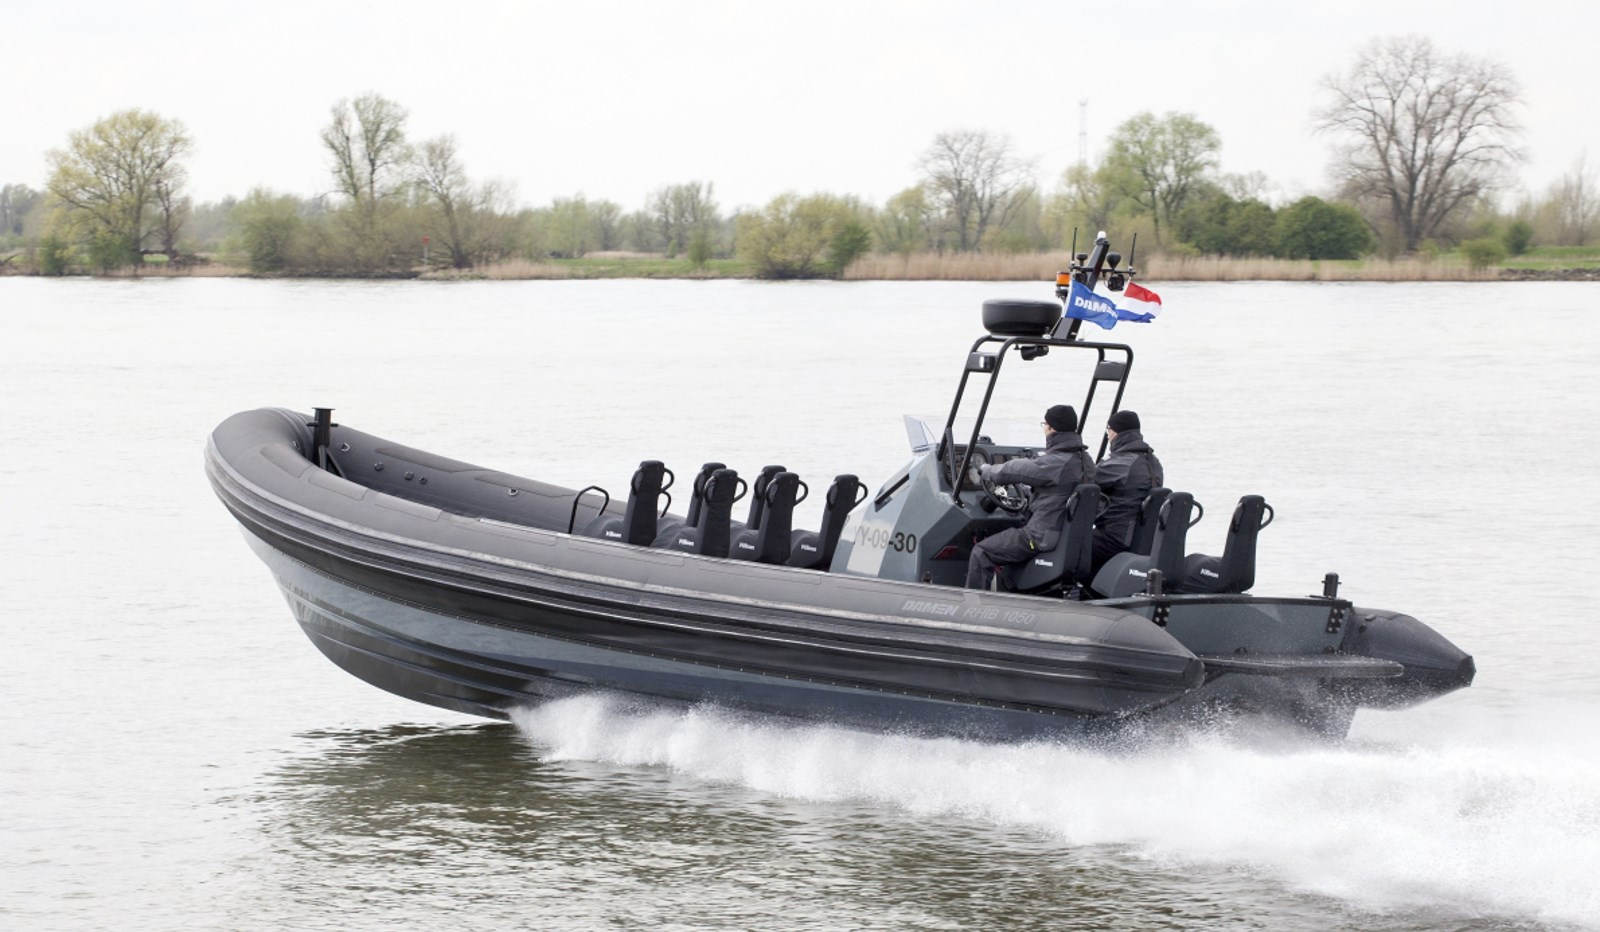 Damen RHIB 1050 with inboard engines for sale